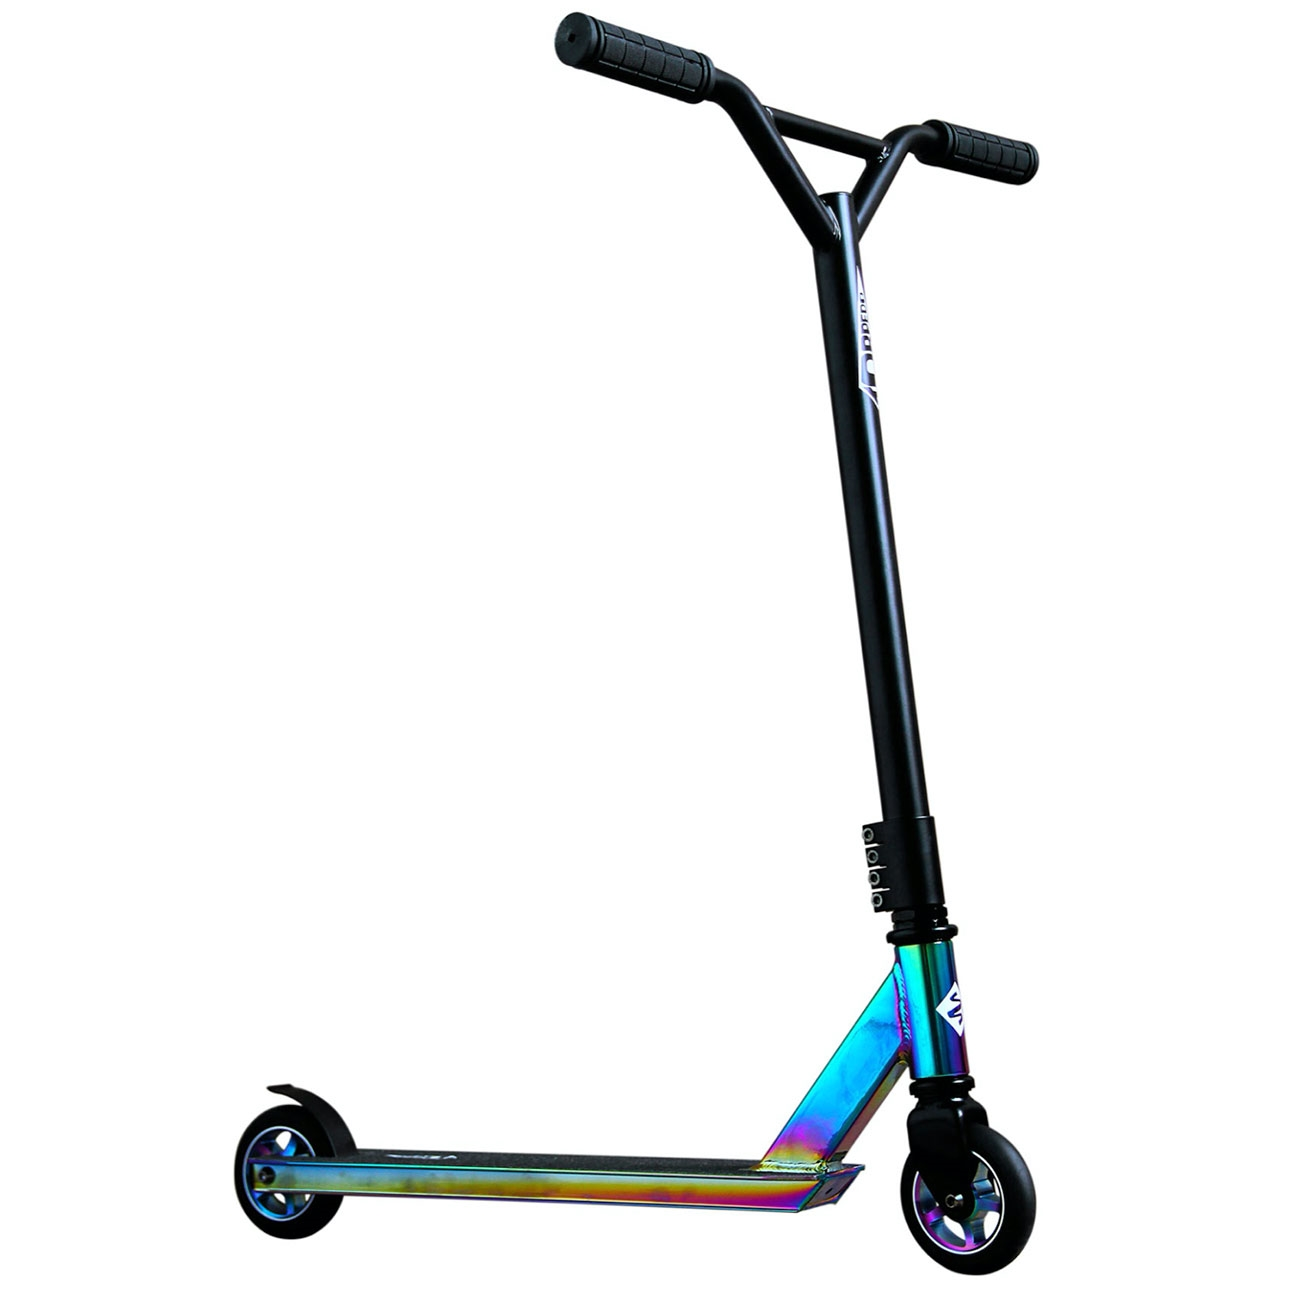 Street Surfing Torpedo 100mm Scooter - Neochrome